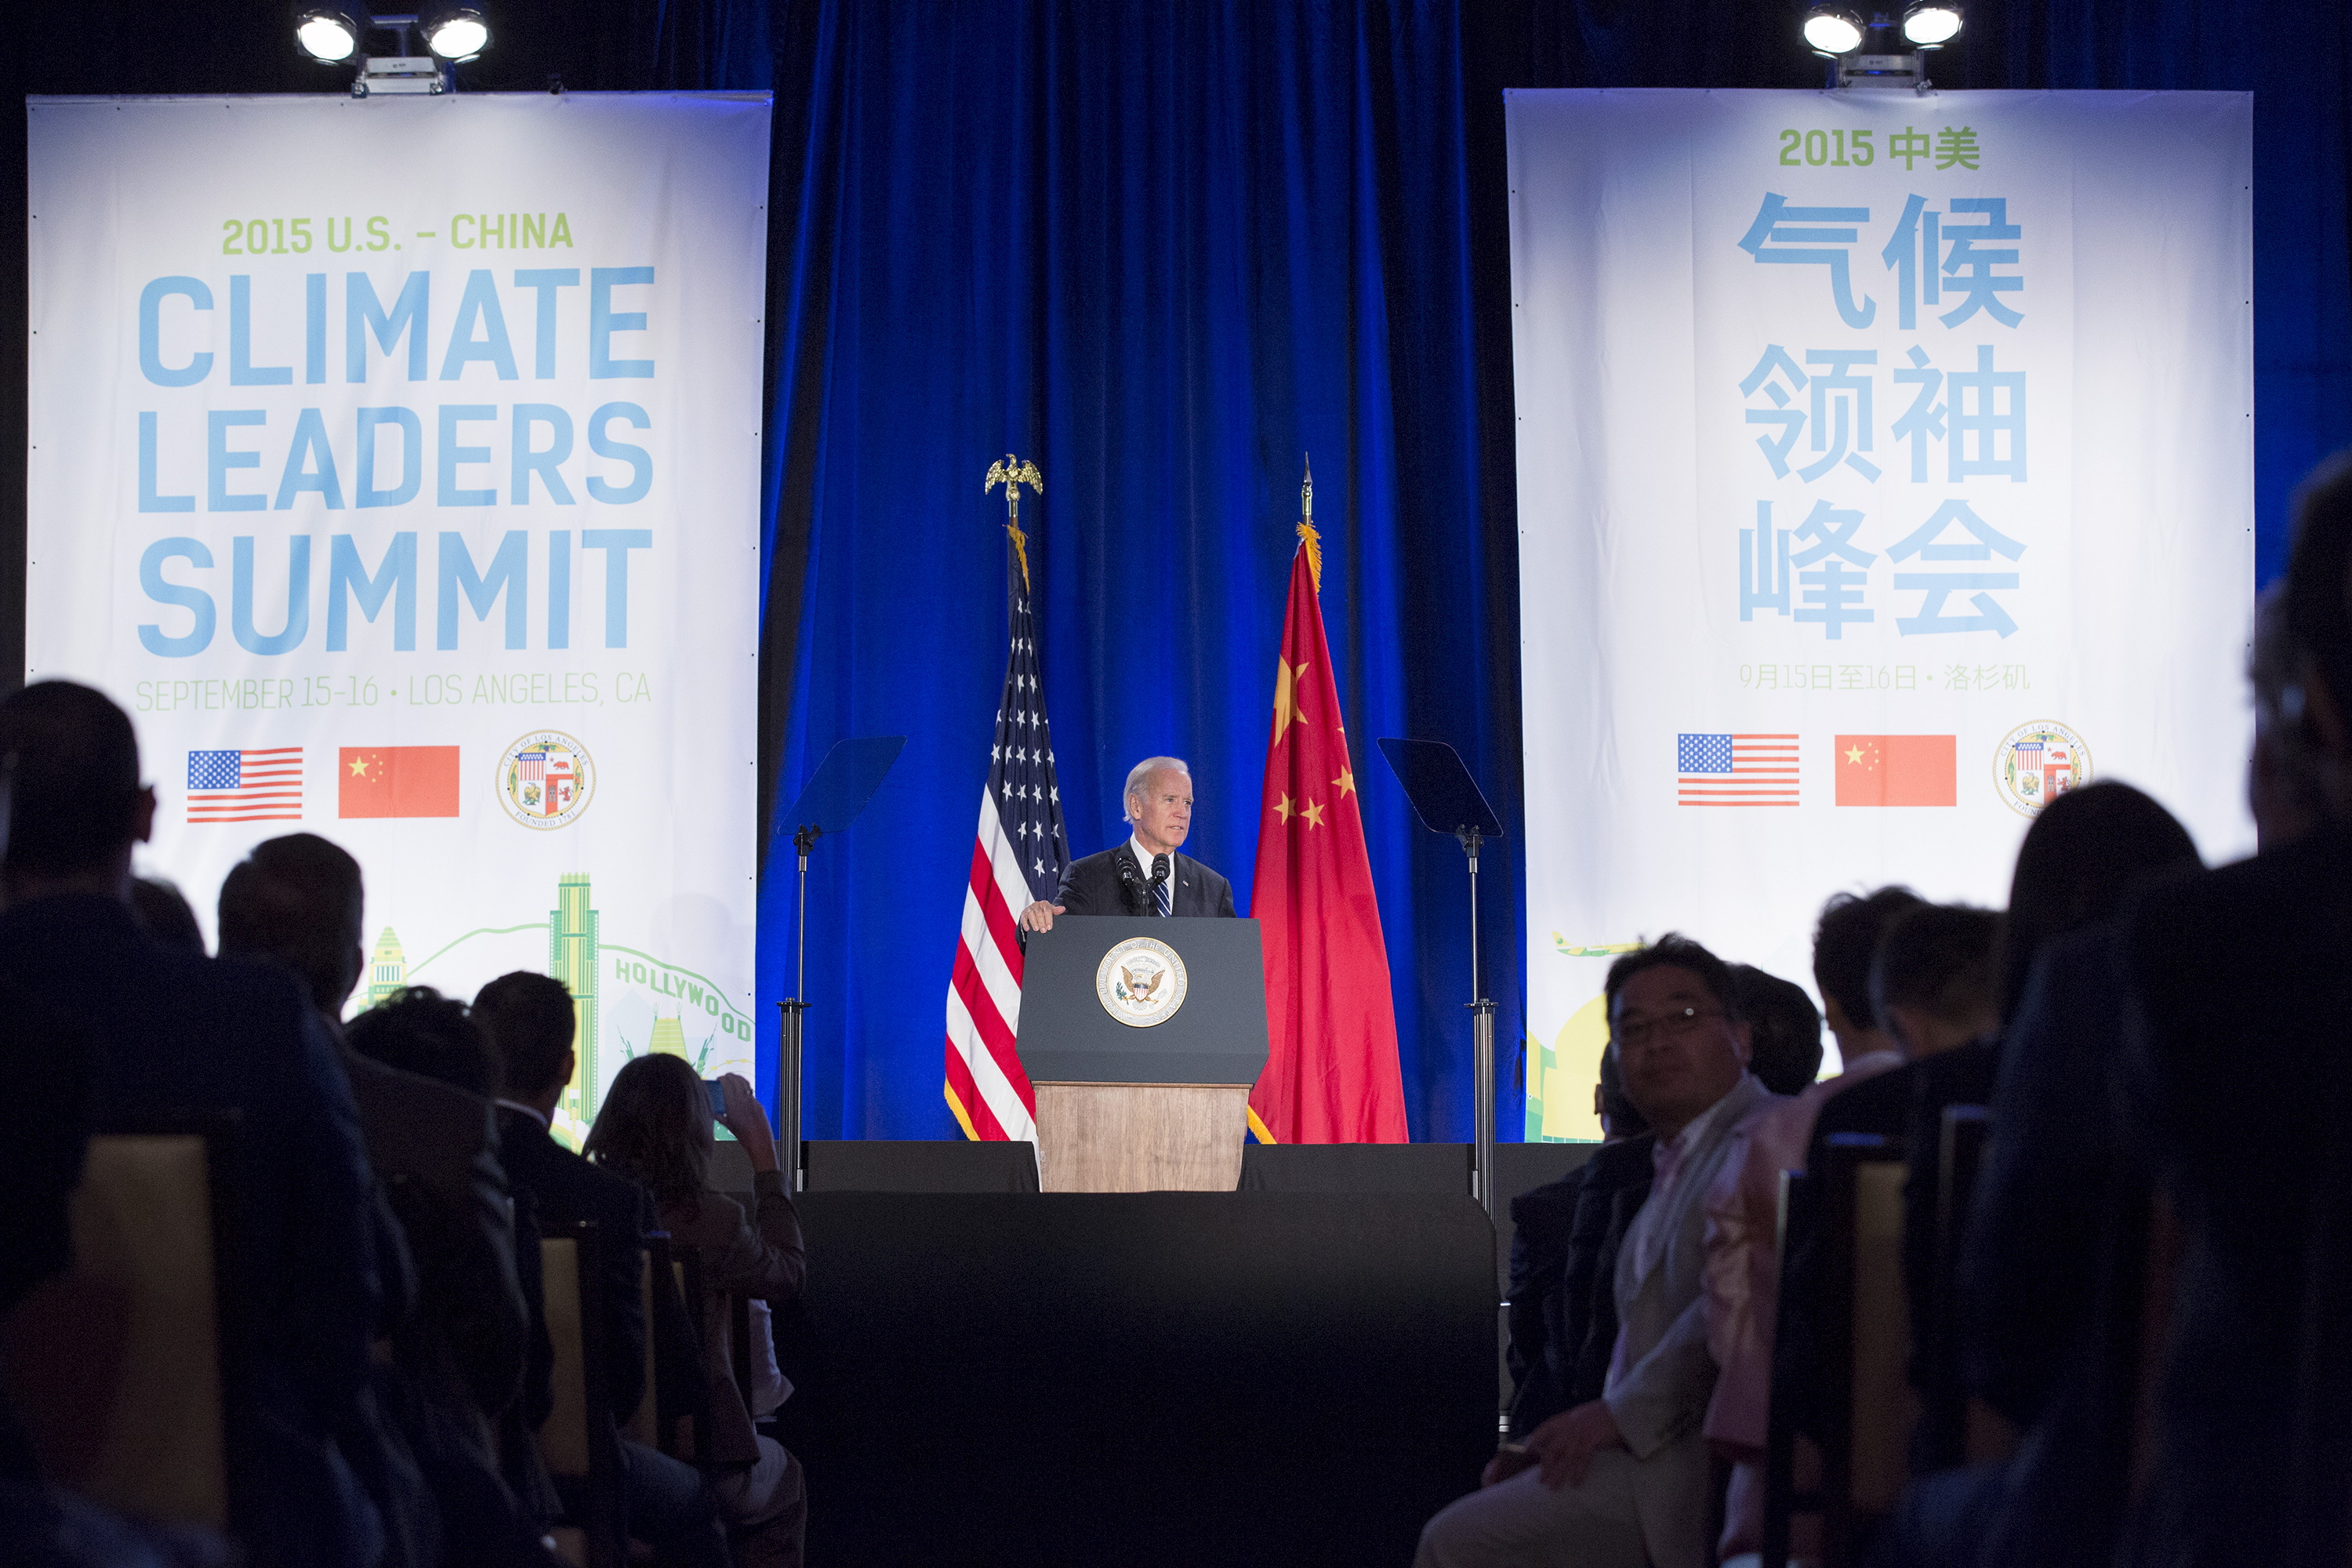 Vice President Joe Biden speaks at the closing session of the US-China Climate Leaders Summit in Los Angeles, California September 16, 2015. Biden's journey to a decision on whether to run for president is taking him this week to California, Michigan, and Ohio -- critical states for fundraising and electoral recognition if he decides to jump in the race.  REUTERS/Jonathan Alcorn